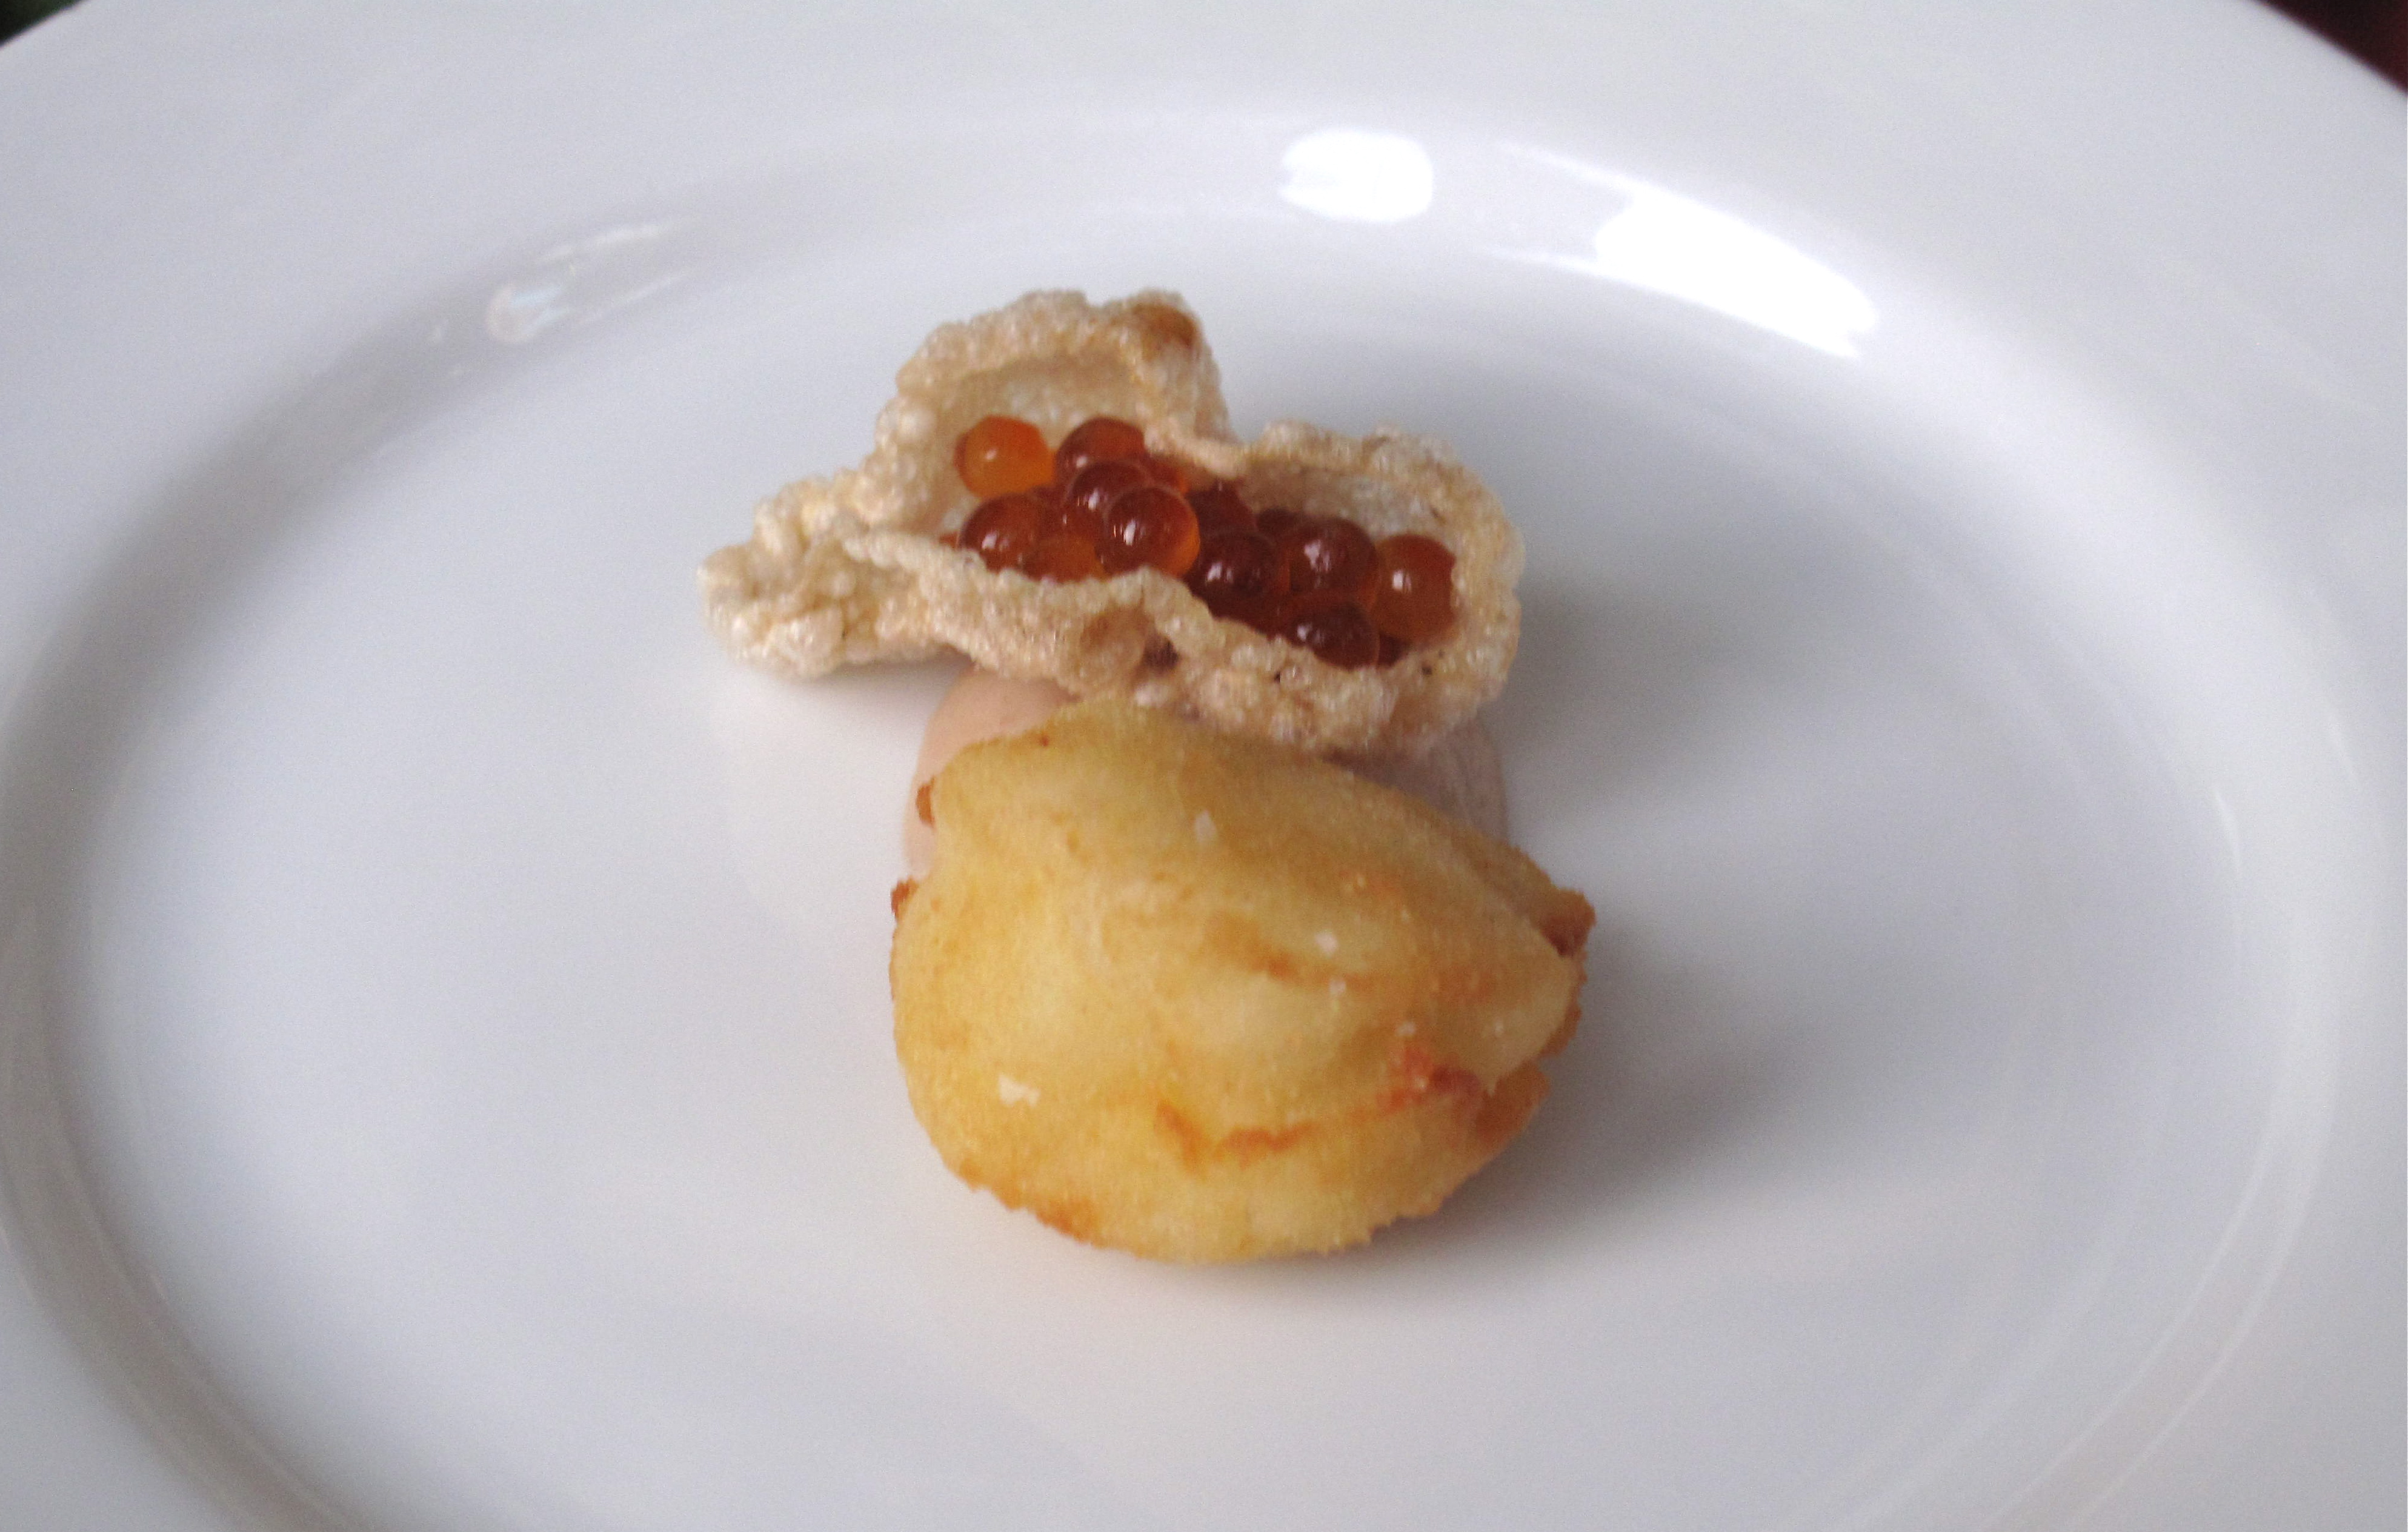 """Bryan's Baltimore coddies with Jerusalem artichokes, smoked trout roe, and bacon """"saltines."""" The bacon saltine with roe was a delicious combination!"""